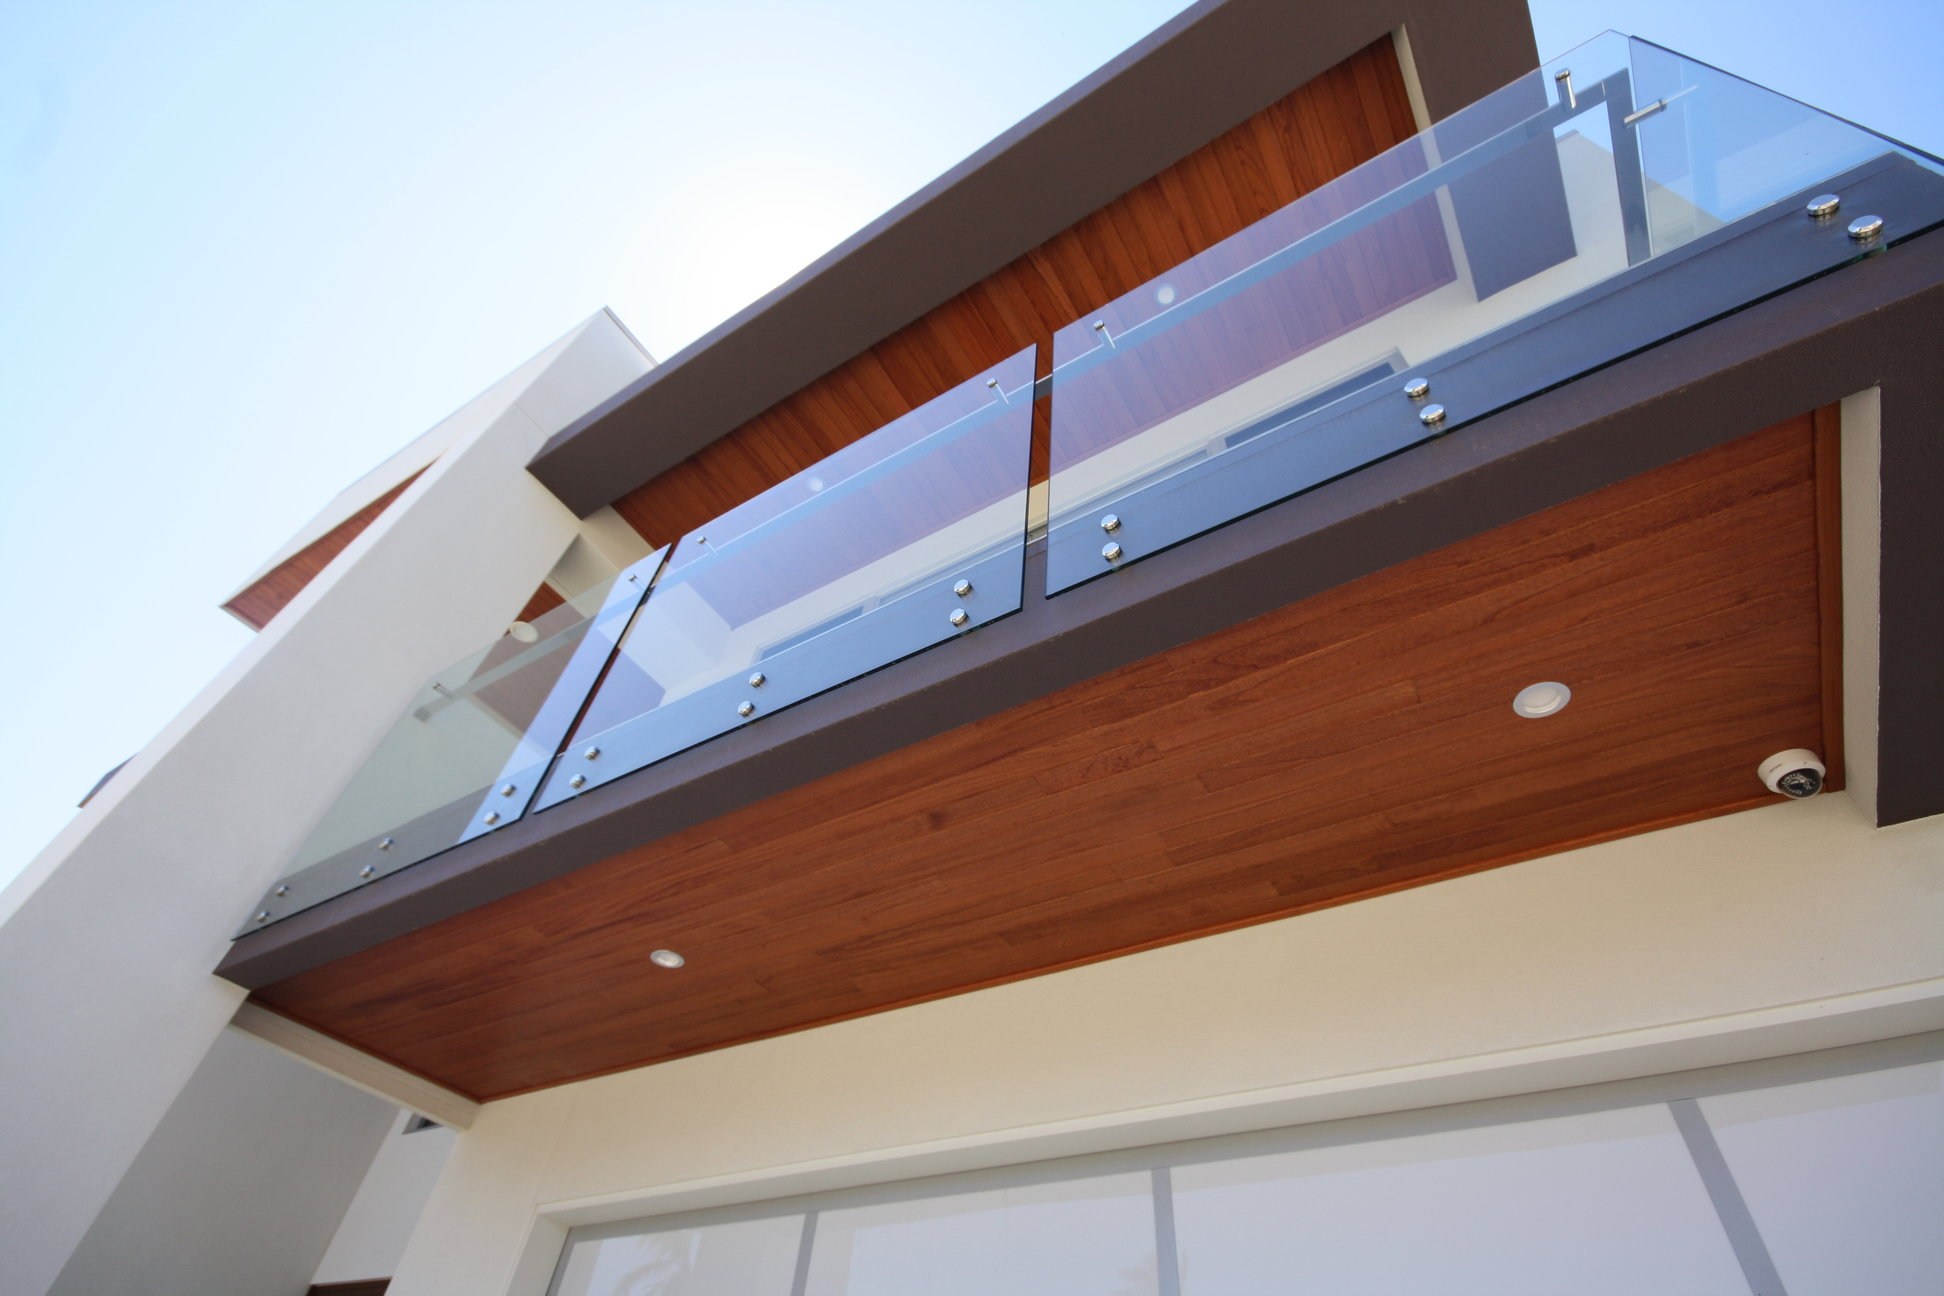 CEDAR - SATIN FINISH - gloss finish timber, timber ceiling, timber alfresco, timber pergola, timber outdoor entertaining, timber lining board, lining board, lining, panel, timber wall, wall, timber sheet, glosswood, bunnings, eco lining, brisbane, gold coast ceilings, brisbane ceilings